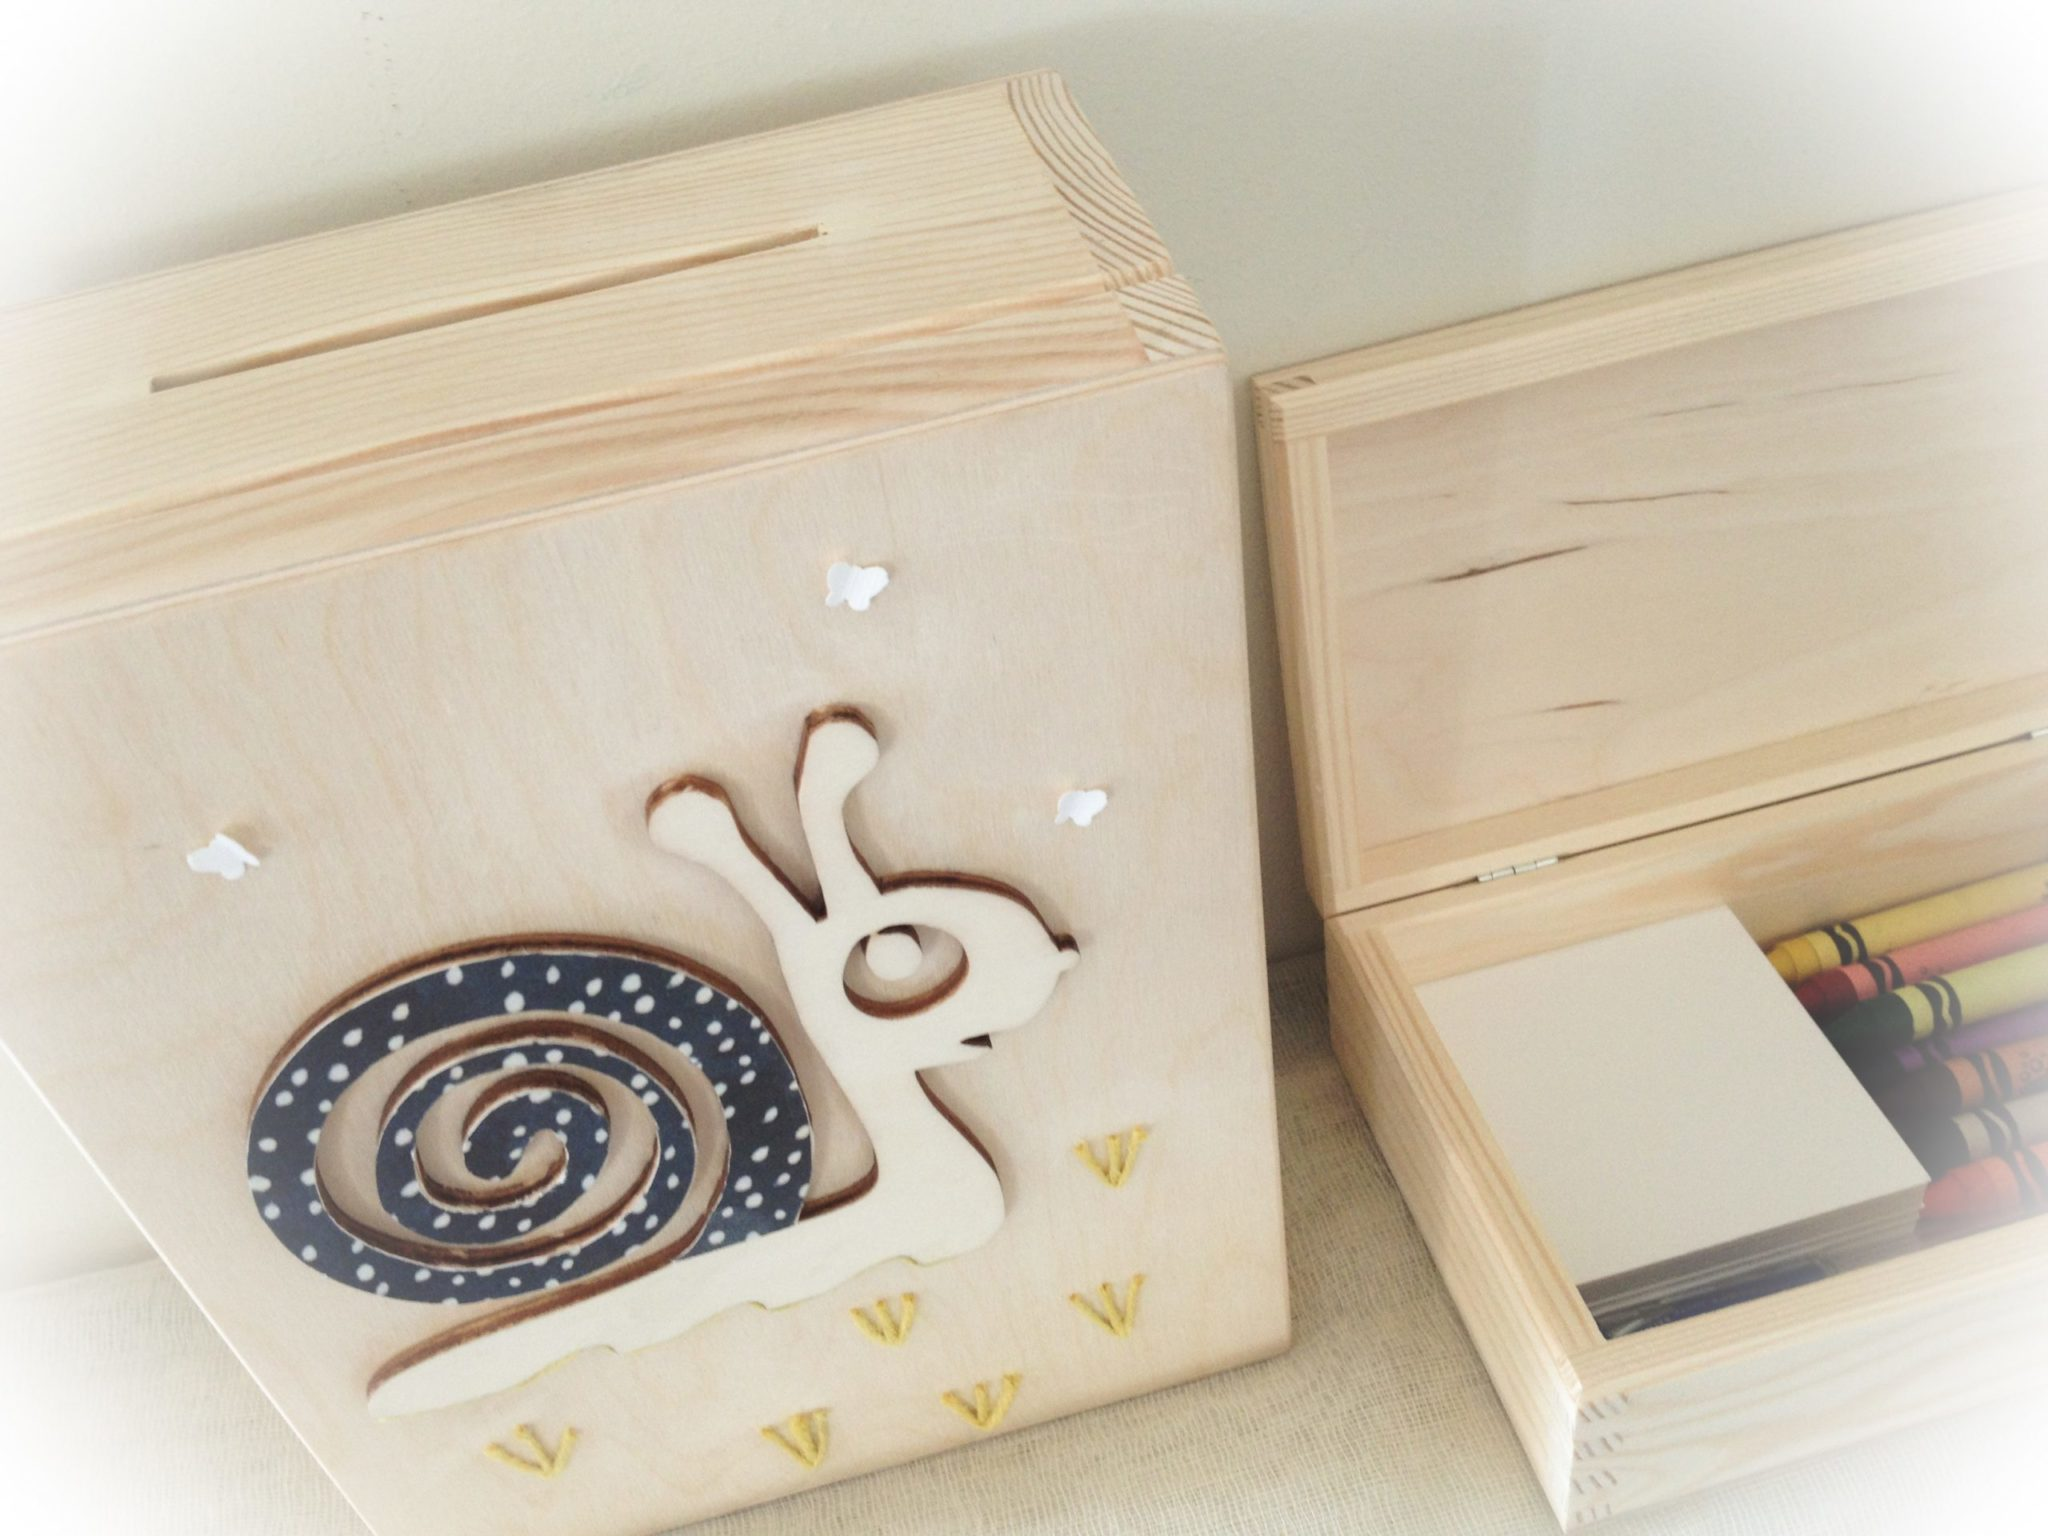 Snails And Butterflies-baptism wish box-kids activity